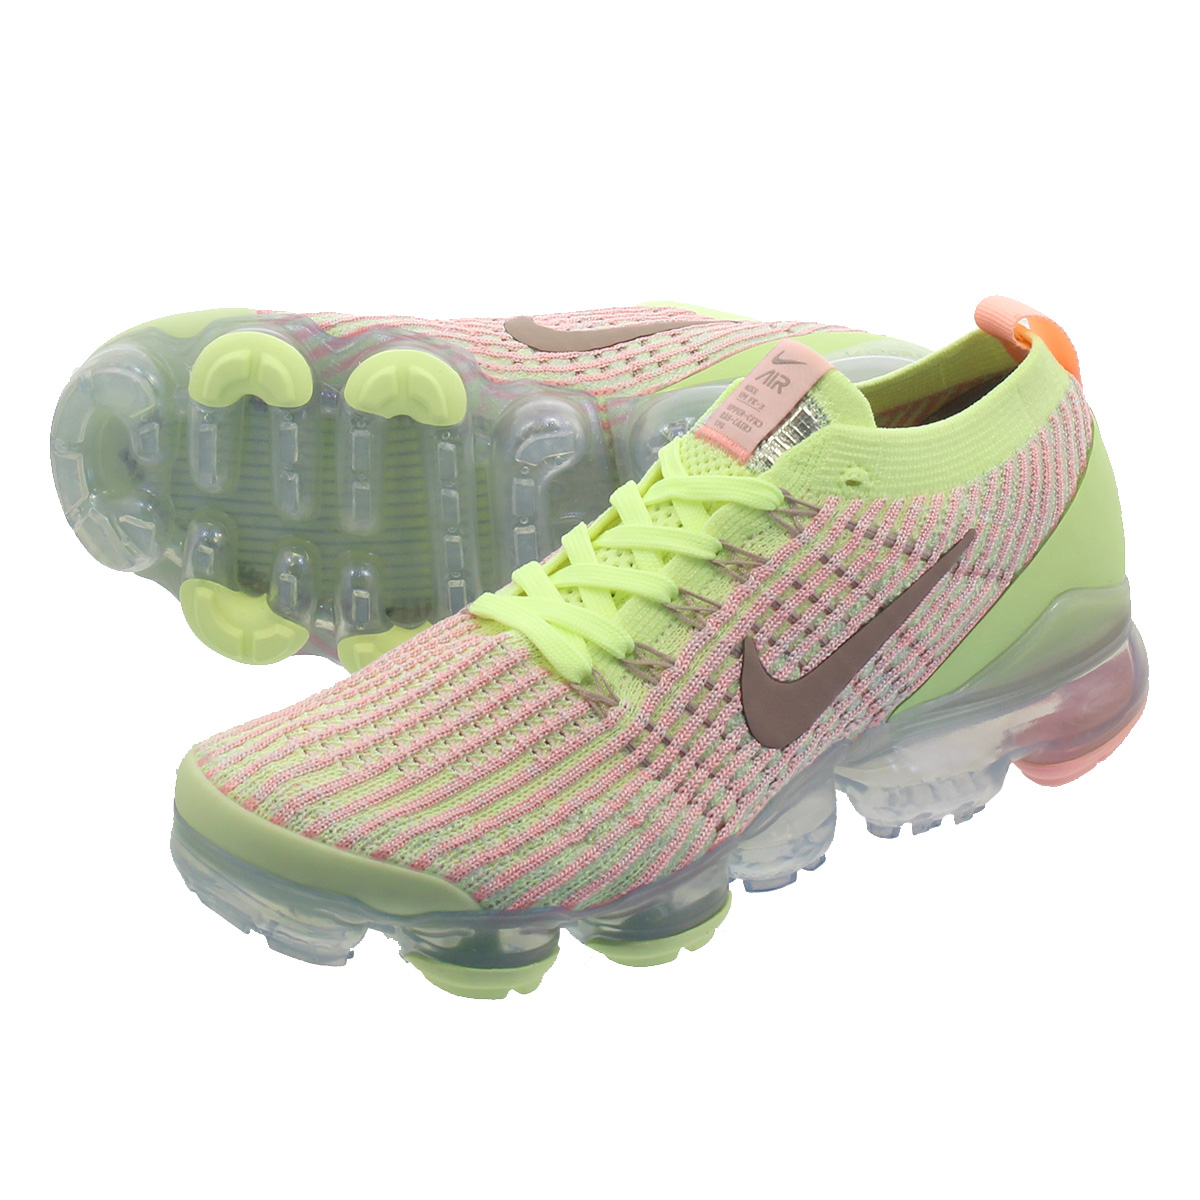 outlet store 0eb92 6c7da NIKE WMNS AIR VAPORMAX FLYKNIT 3 Nike women vapor max fried food knit 3  BARELY VOLT/DIFFUSED TAUPE aj6910-700